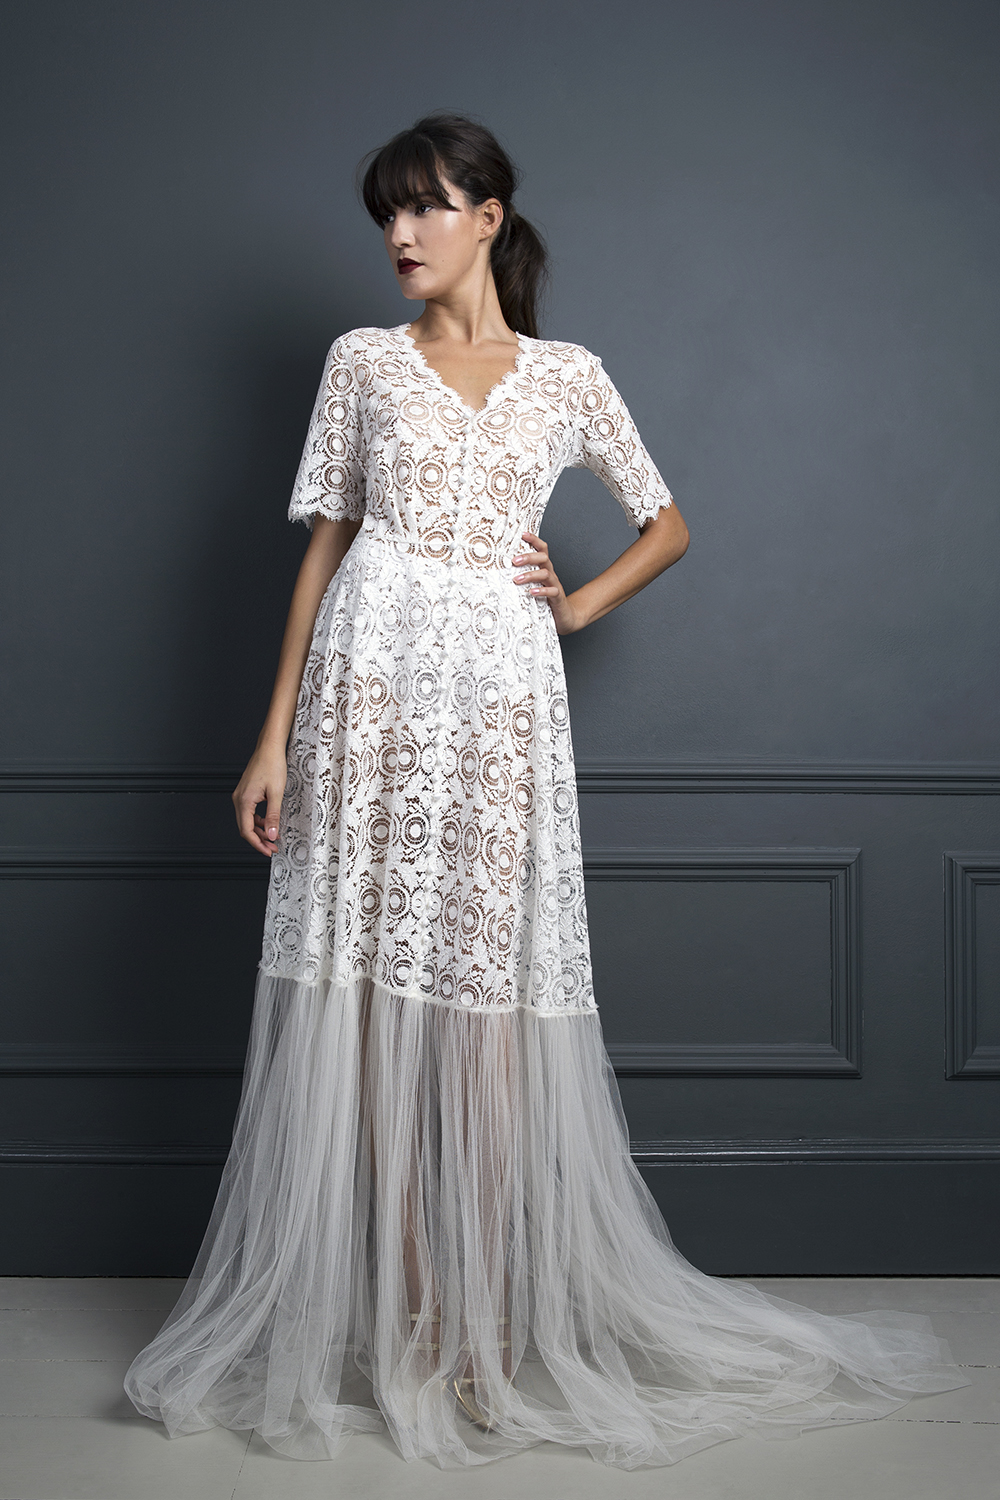 Sheer lace Morgan shirt dress worn over the Iris slip | Wedding dress by Halfpenny London